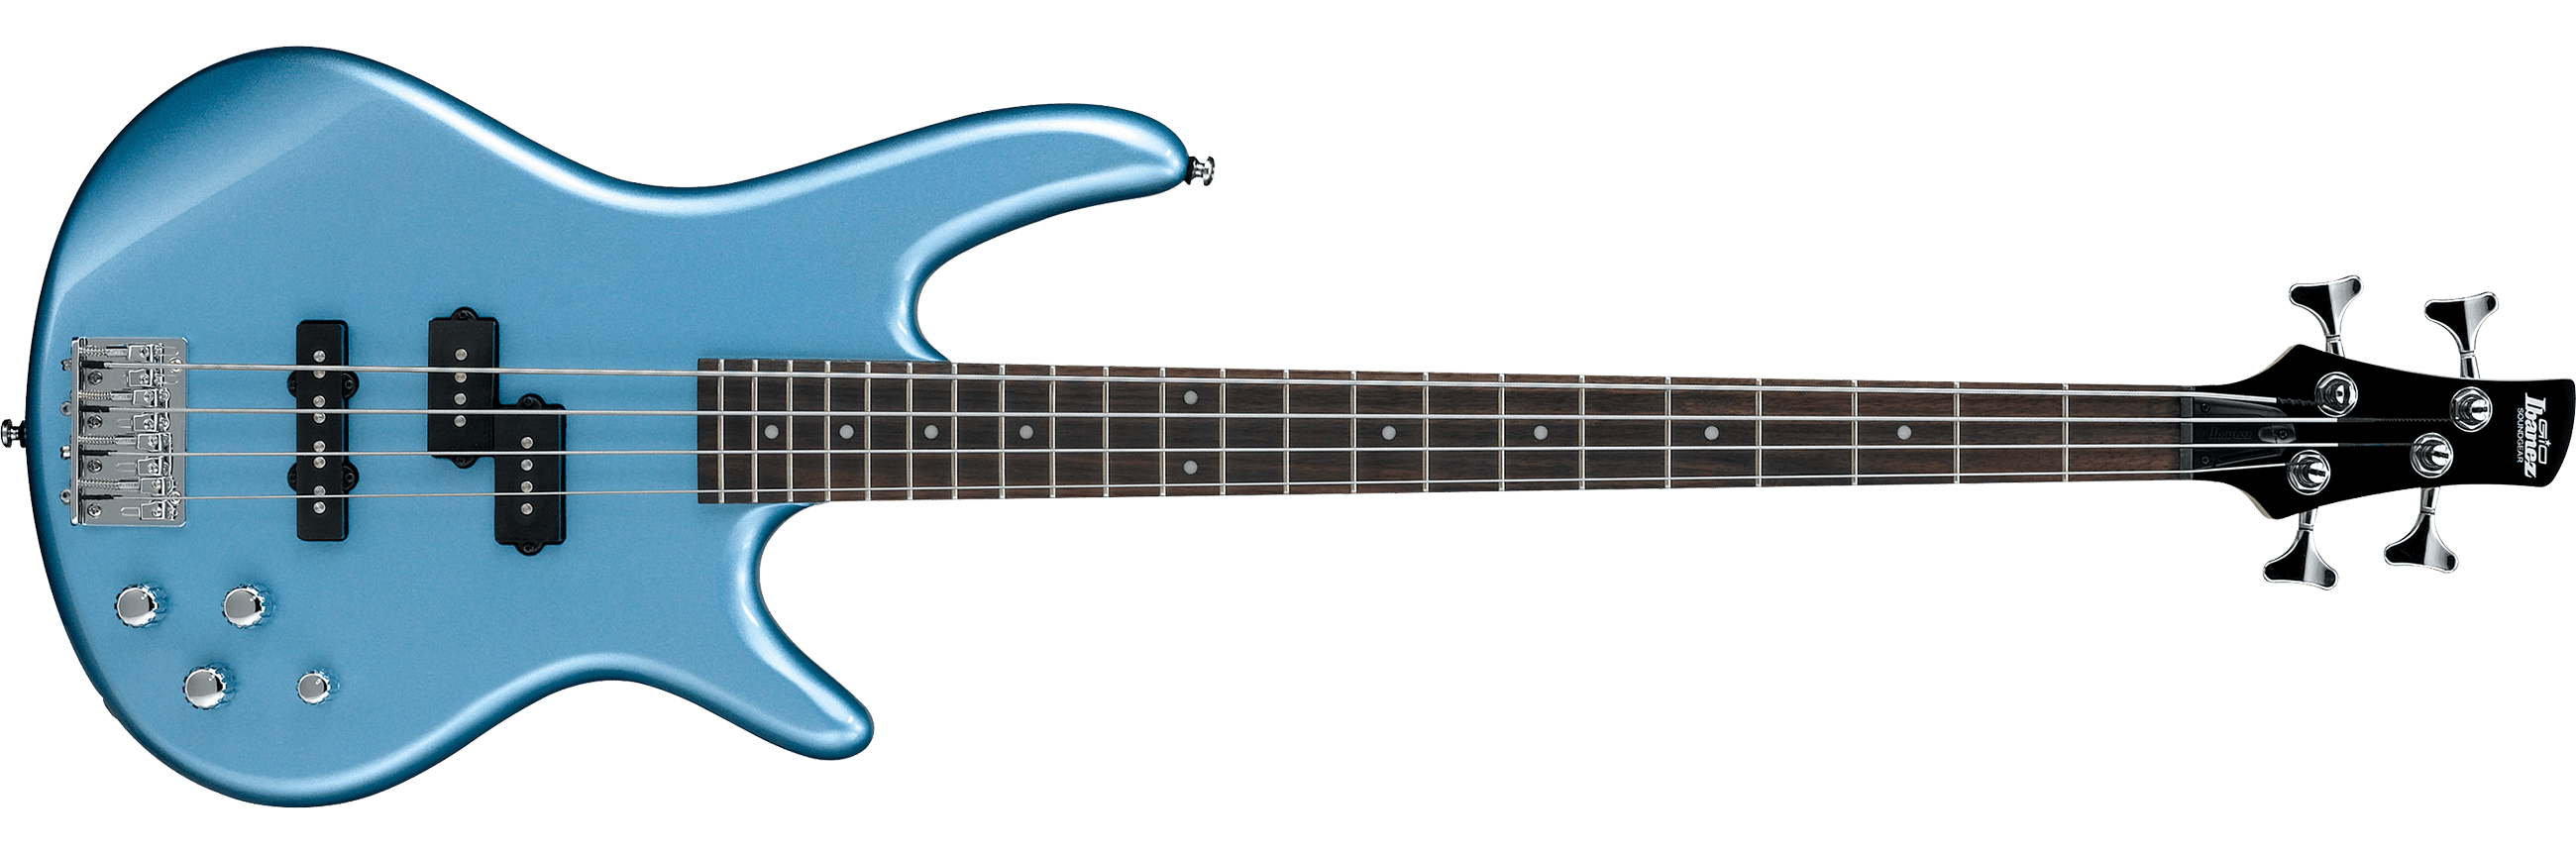 GSR200 | SR | ELECTRIC BES | PRODUCTS | Ibanez guitars on